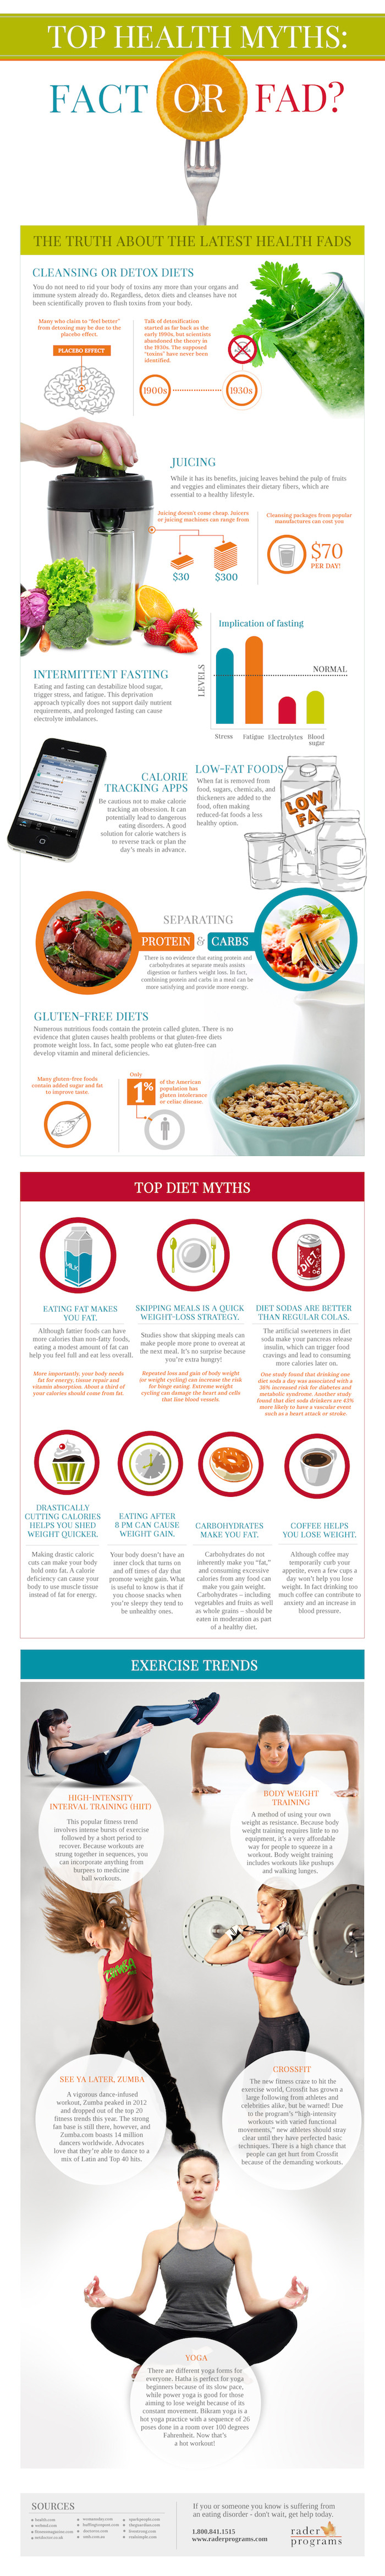 Top 7 Diet Myths Infographic